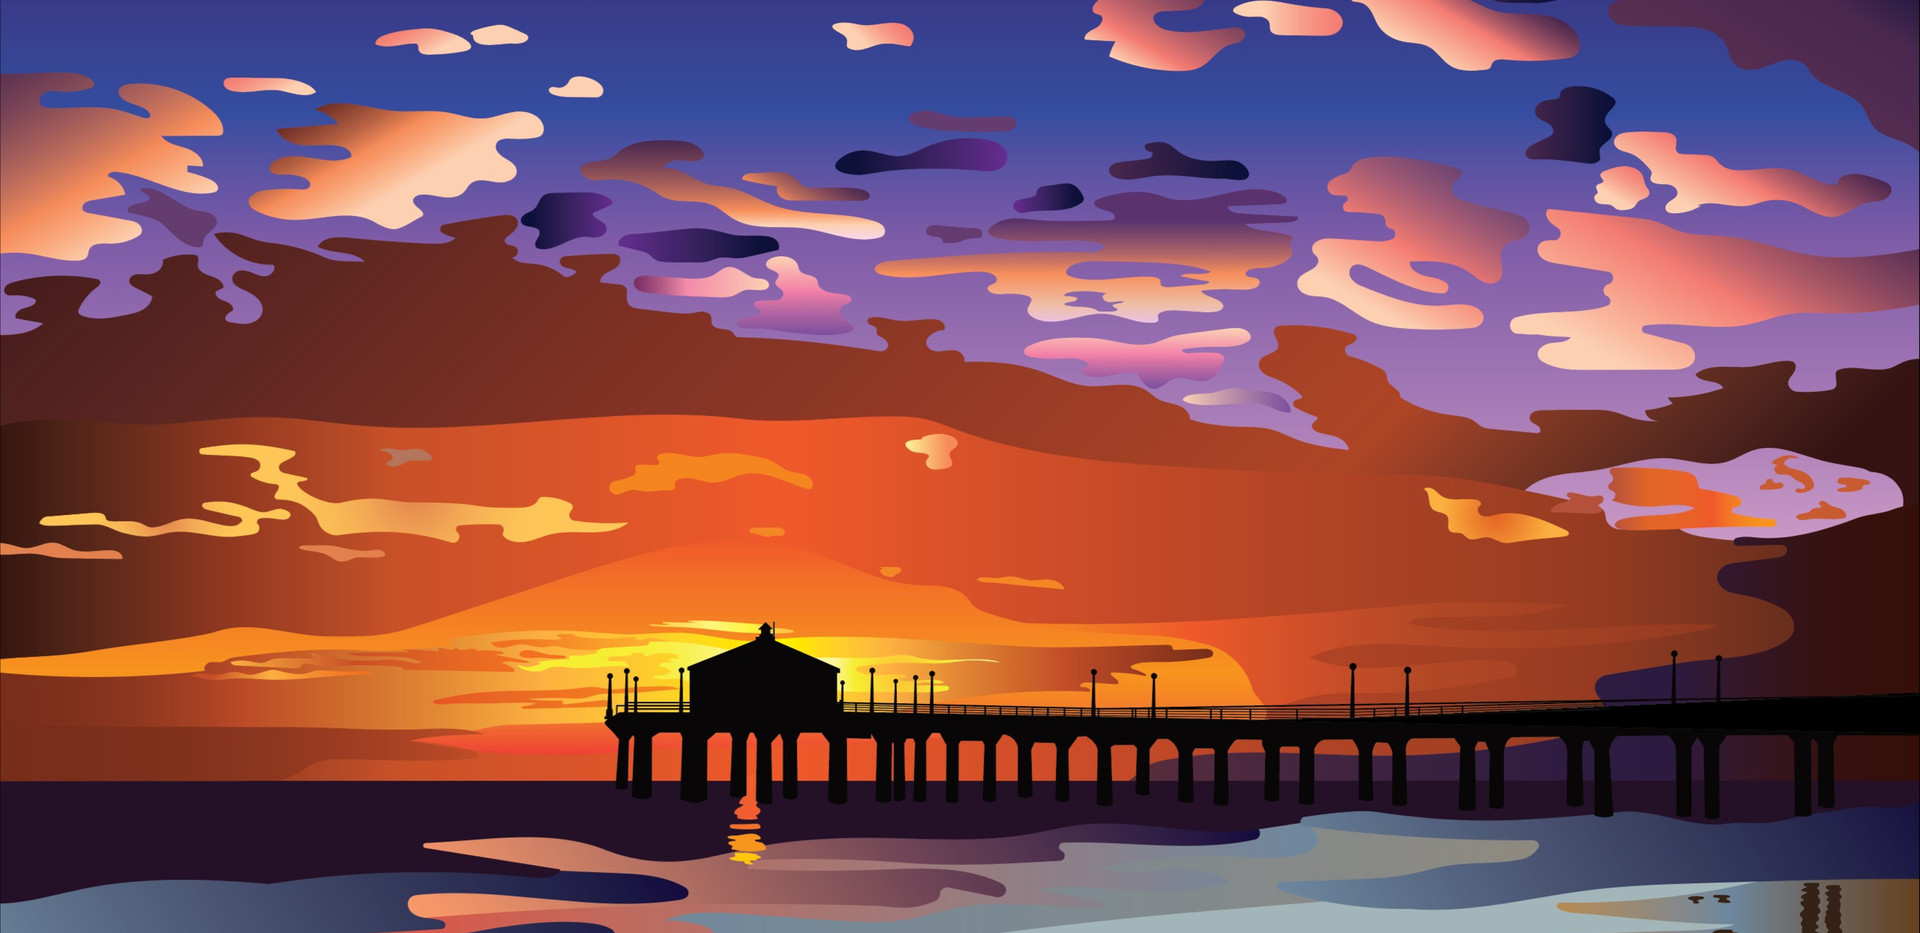 Huntington Beach Pier, California at Sunset